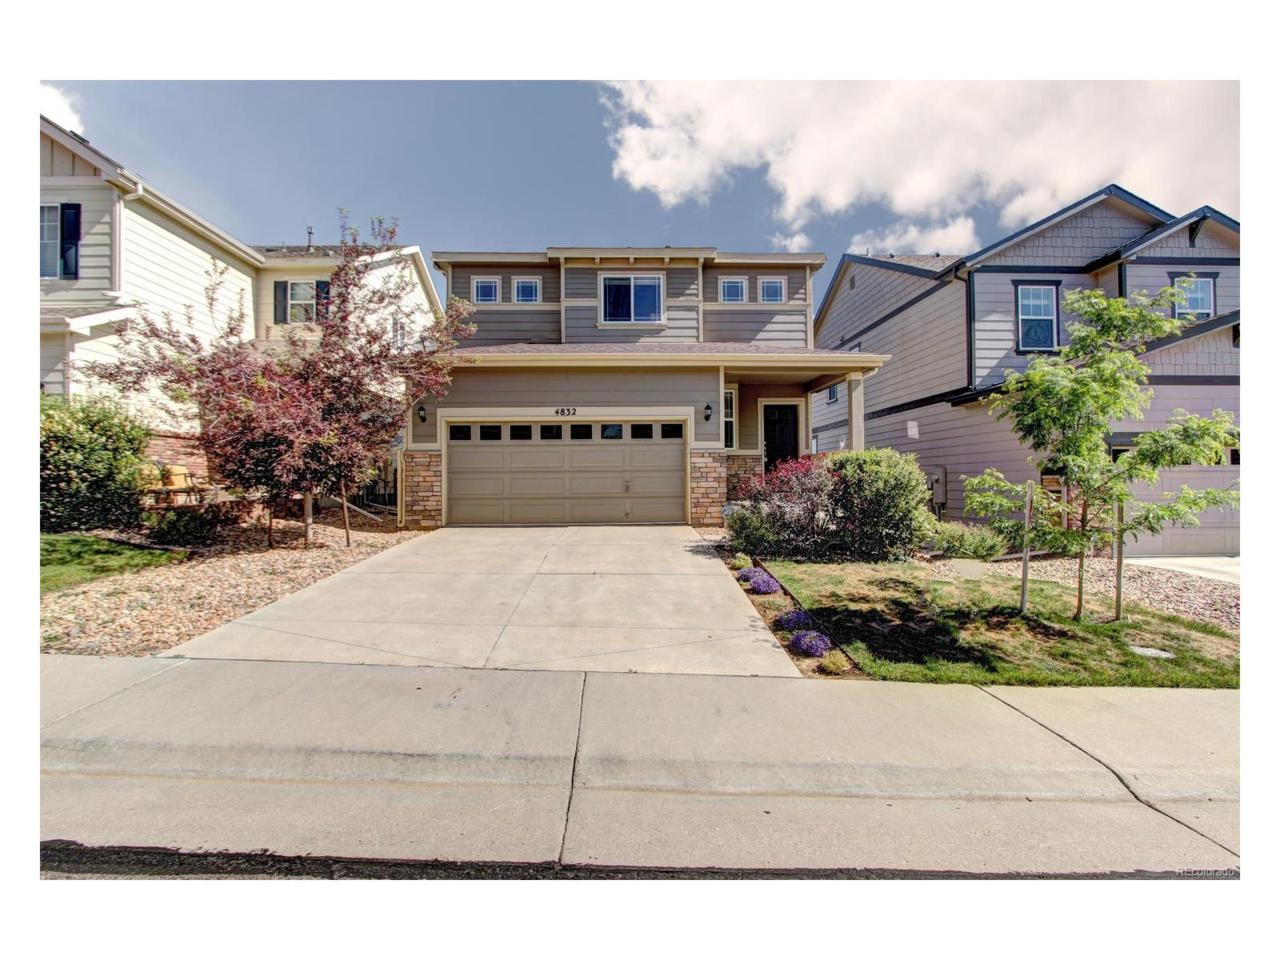 4832 S Picadilly Court, Aurora, CO 80015 (MLS #3418017) :: 8z Real Estate